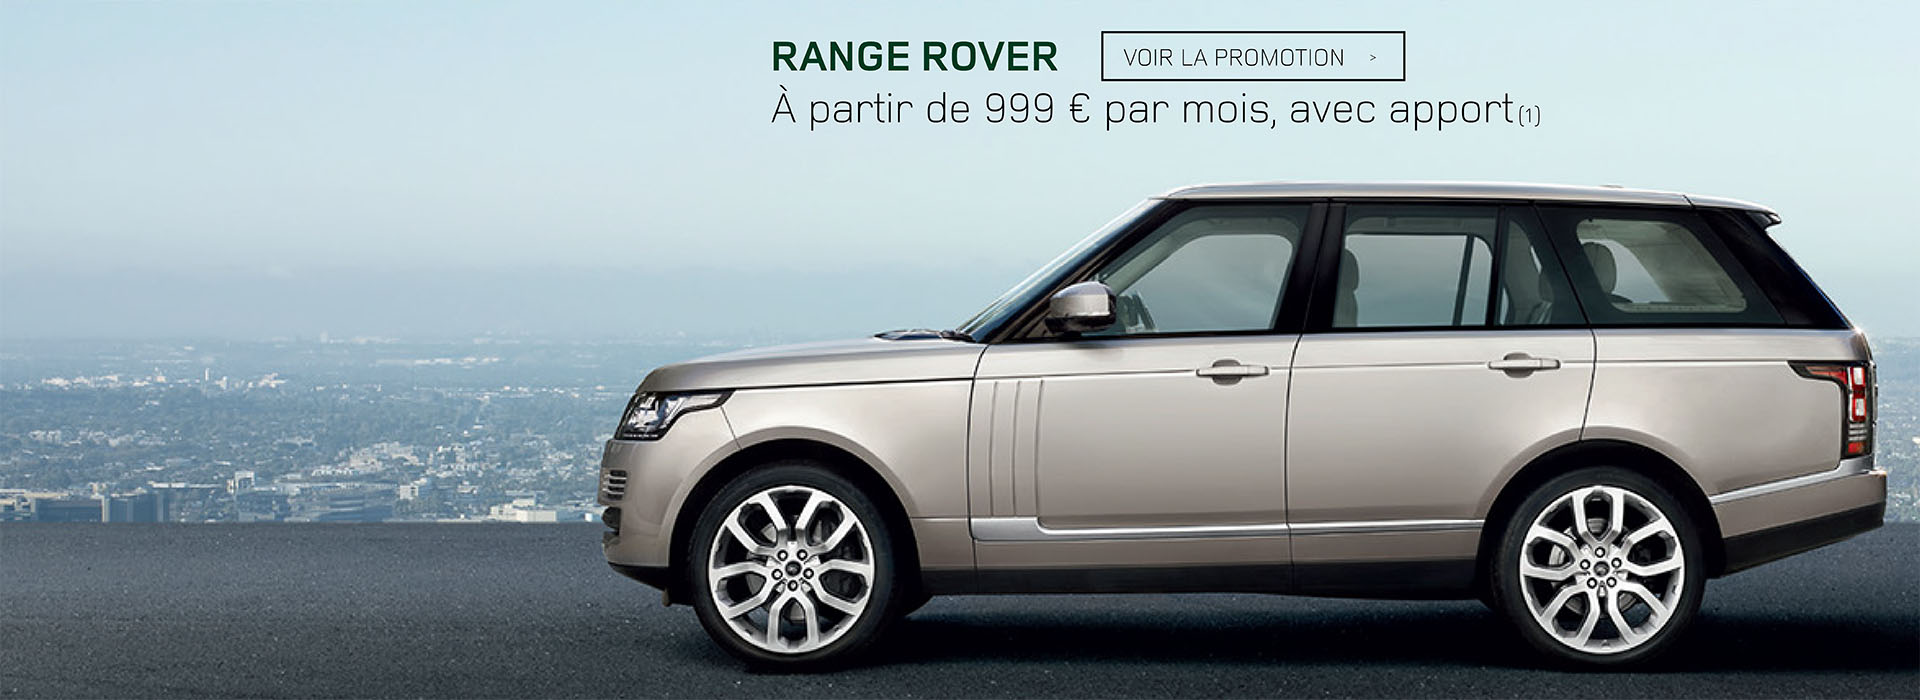 land rover strasbourg vente voiture neuve vehicule occasion. Black Bedroom Furniture Sets. Home Design Ideas